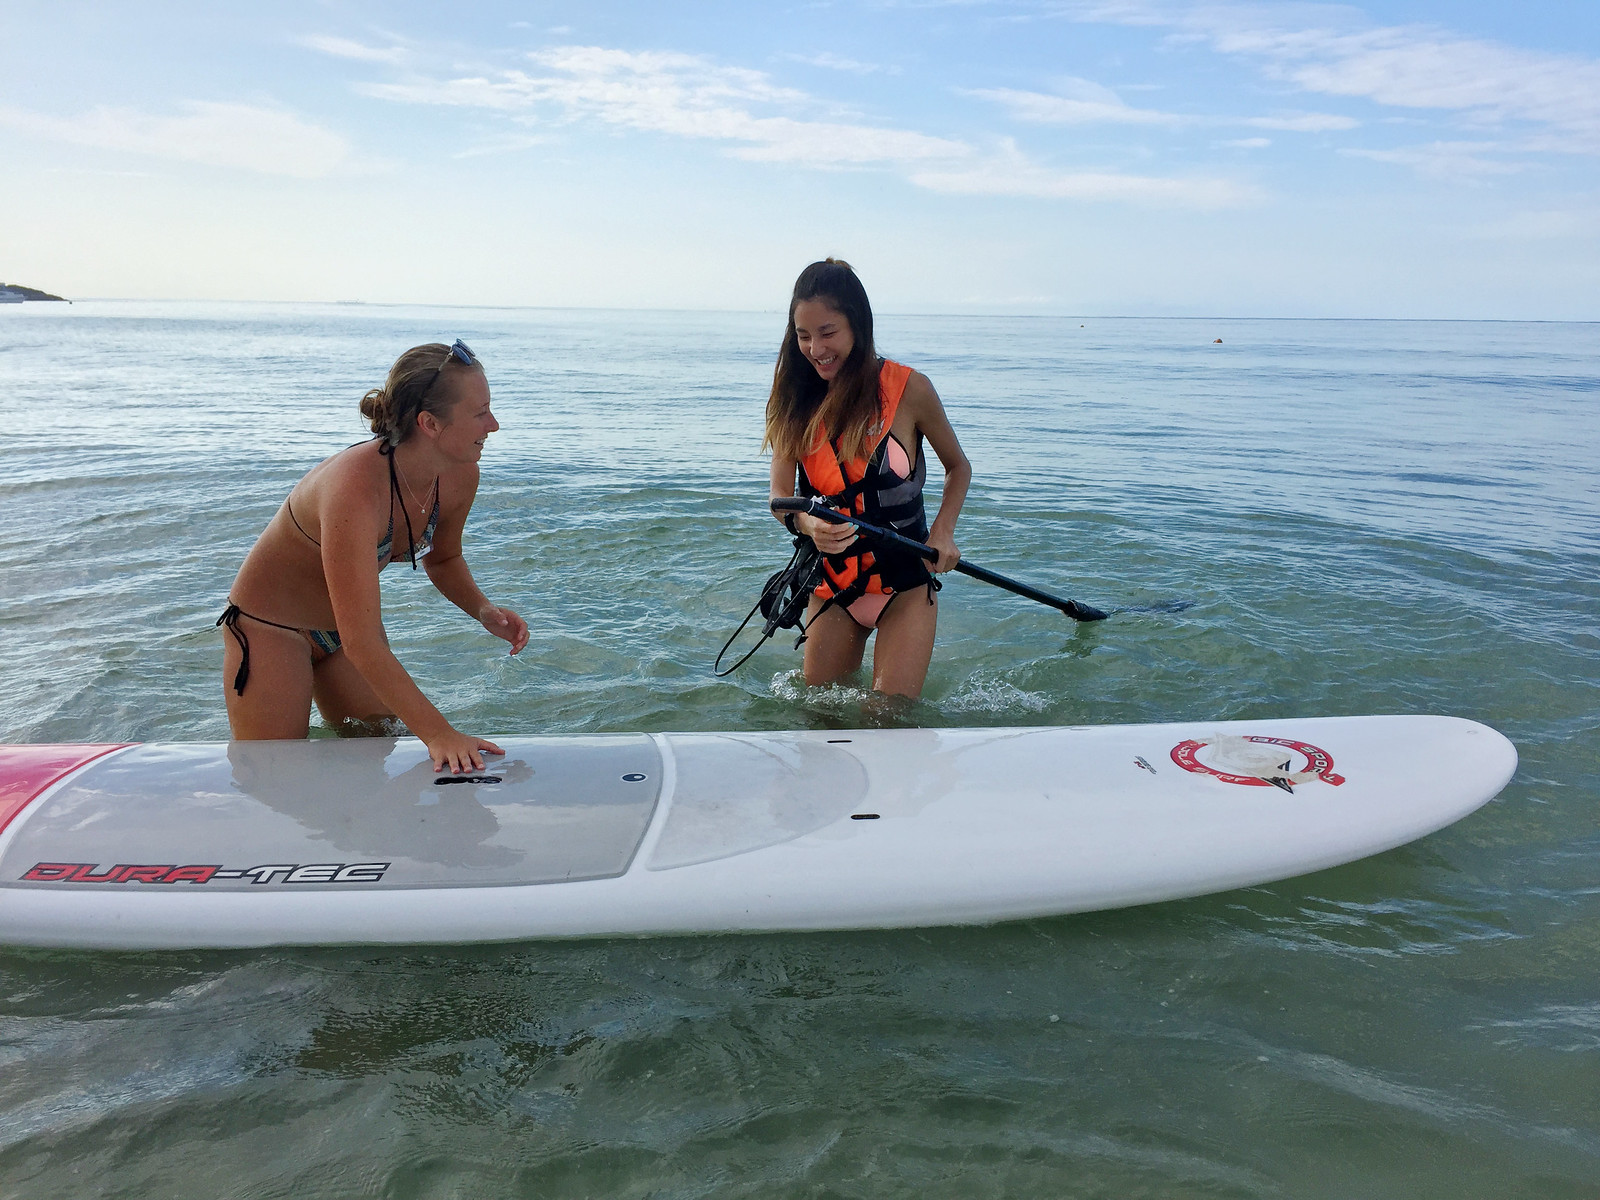 With Ashleigh demonstrating how to paddle board